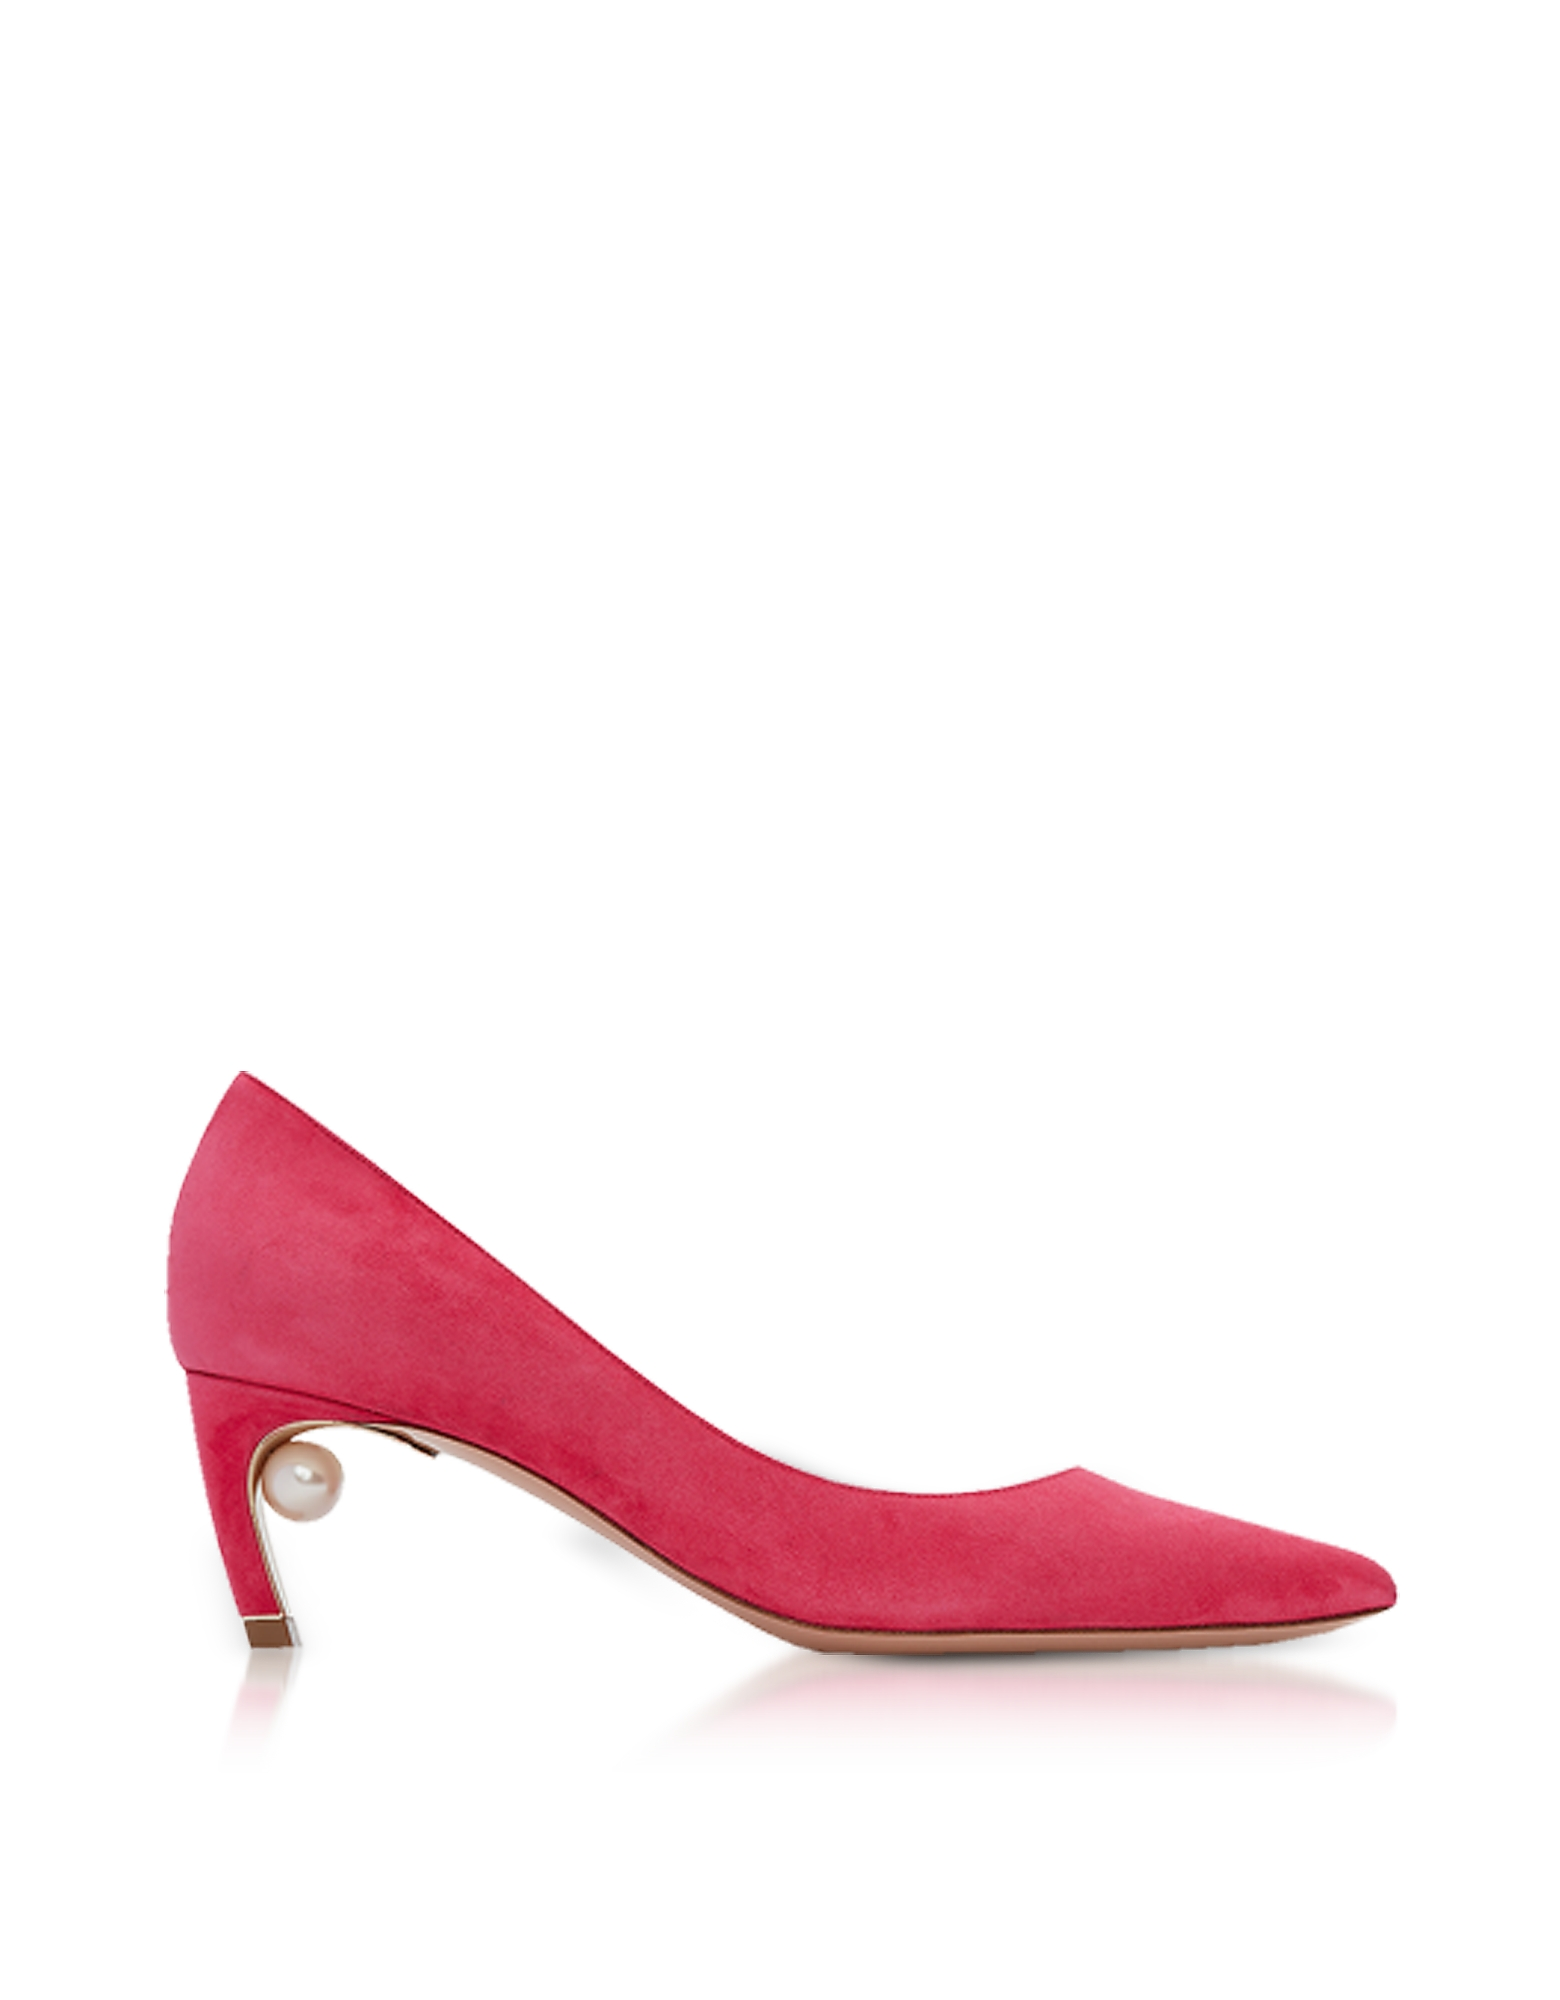 Nicholas Kirkwood Shoes, Fuxia Suede 55mm Mira Pearl Pumps